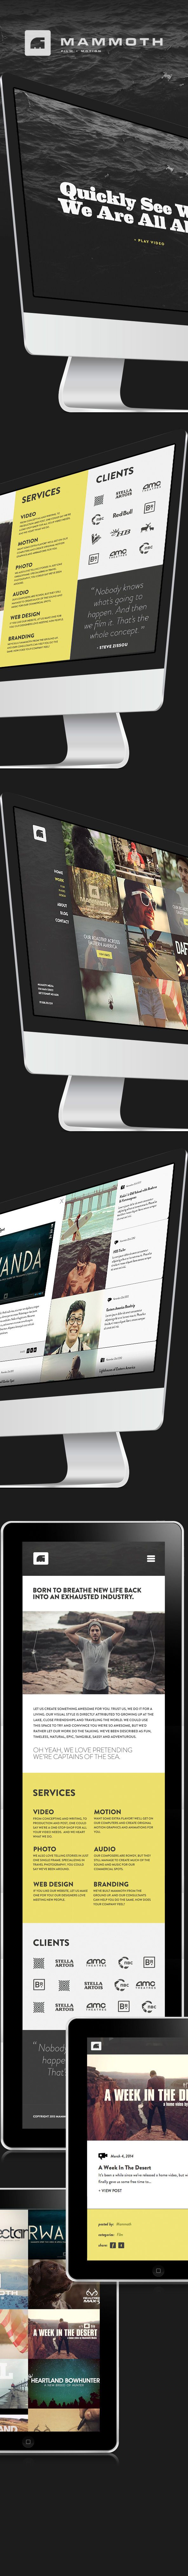 Mammoth Media Redesign by Christopher Wilson